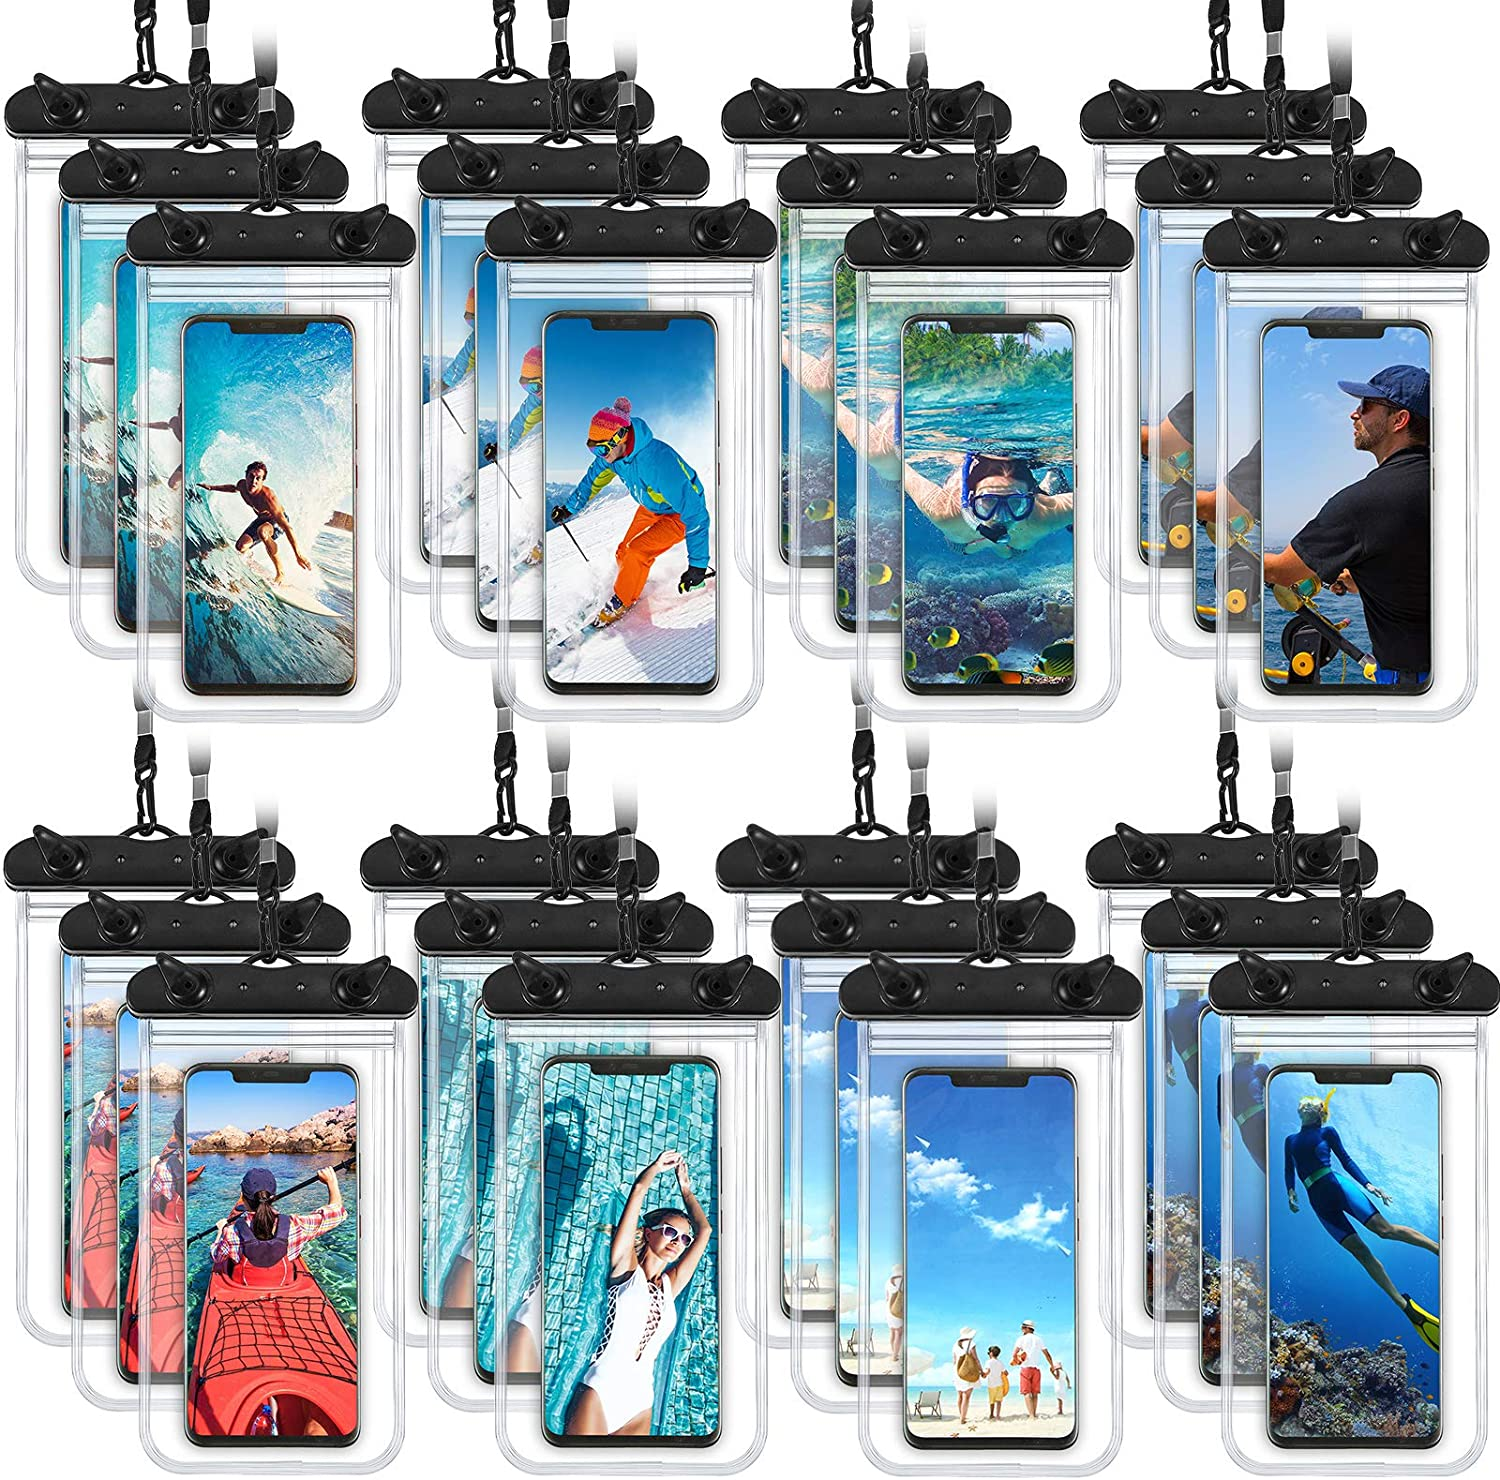 24 Pieces Universal Waterproof Phone Pouch Underwater Clear Phone Case Cellphone Dry Bag Pouch with Lanyard Outdoor Beach Swimming Snorkeling for Smartphone up to 6.9 Inch (Black)